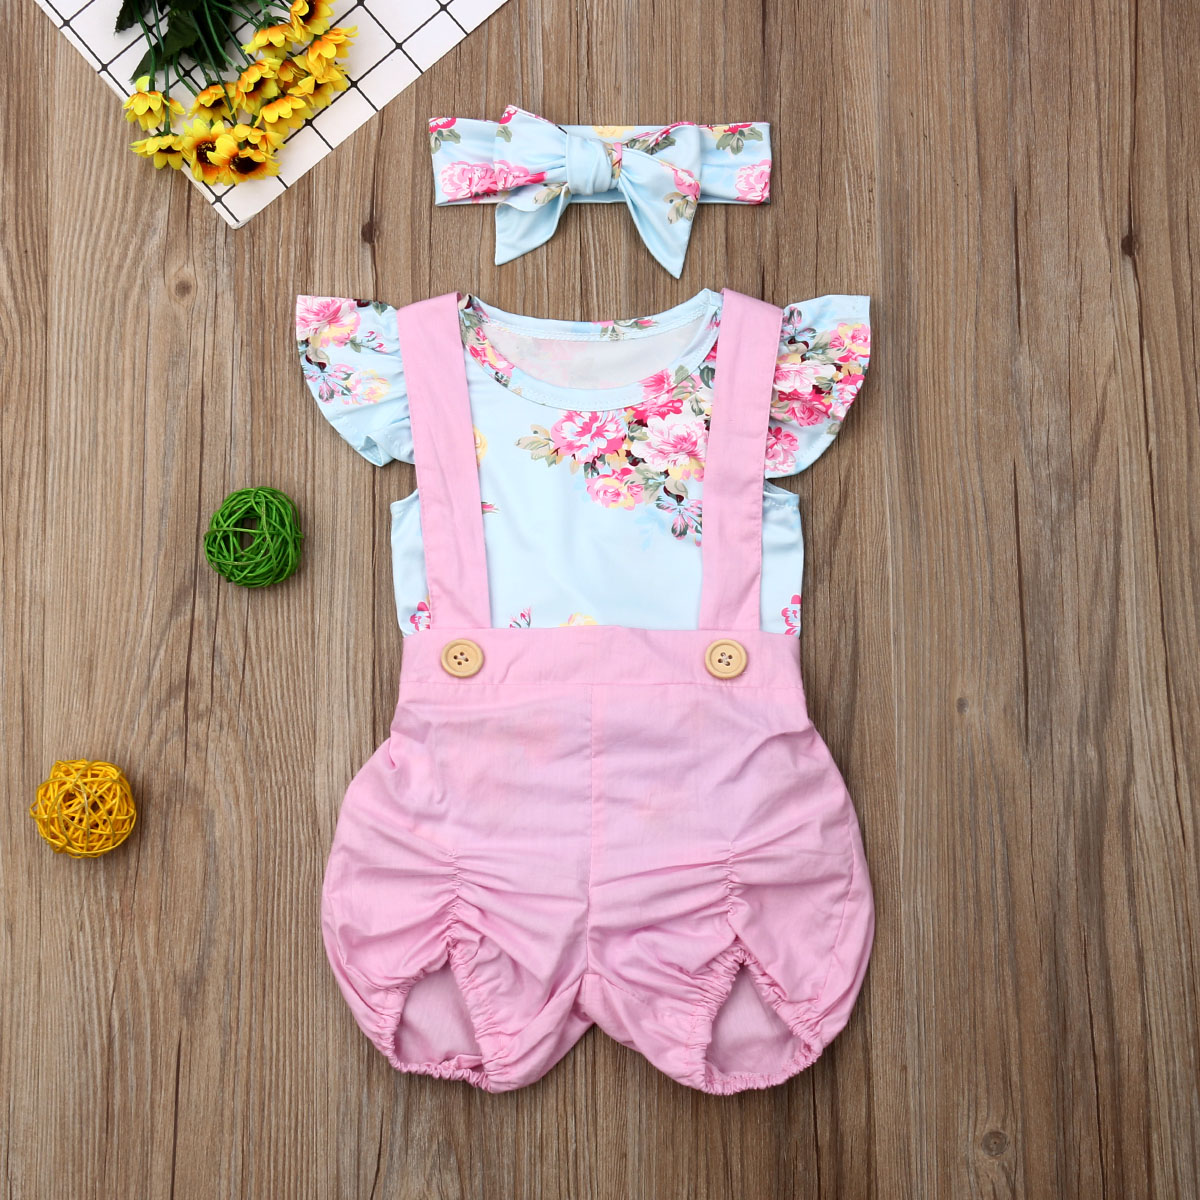 Pudcoco Summer Newborn Baby Girl Clothes Fly Sleeve Flower Print Romper Strap Short Pants 2Pcs Outfits Summer Clothes